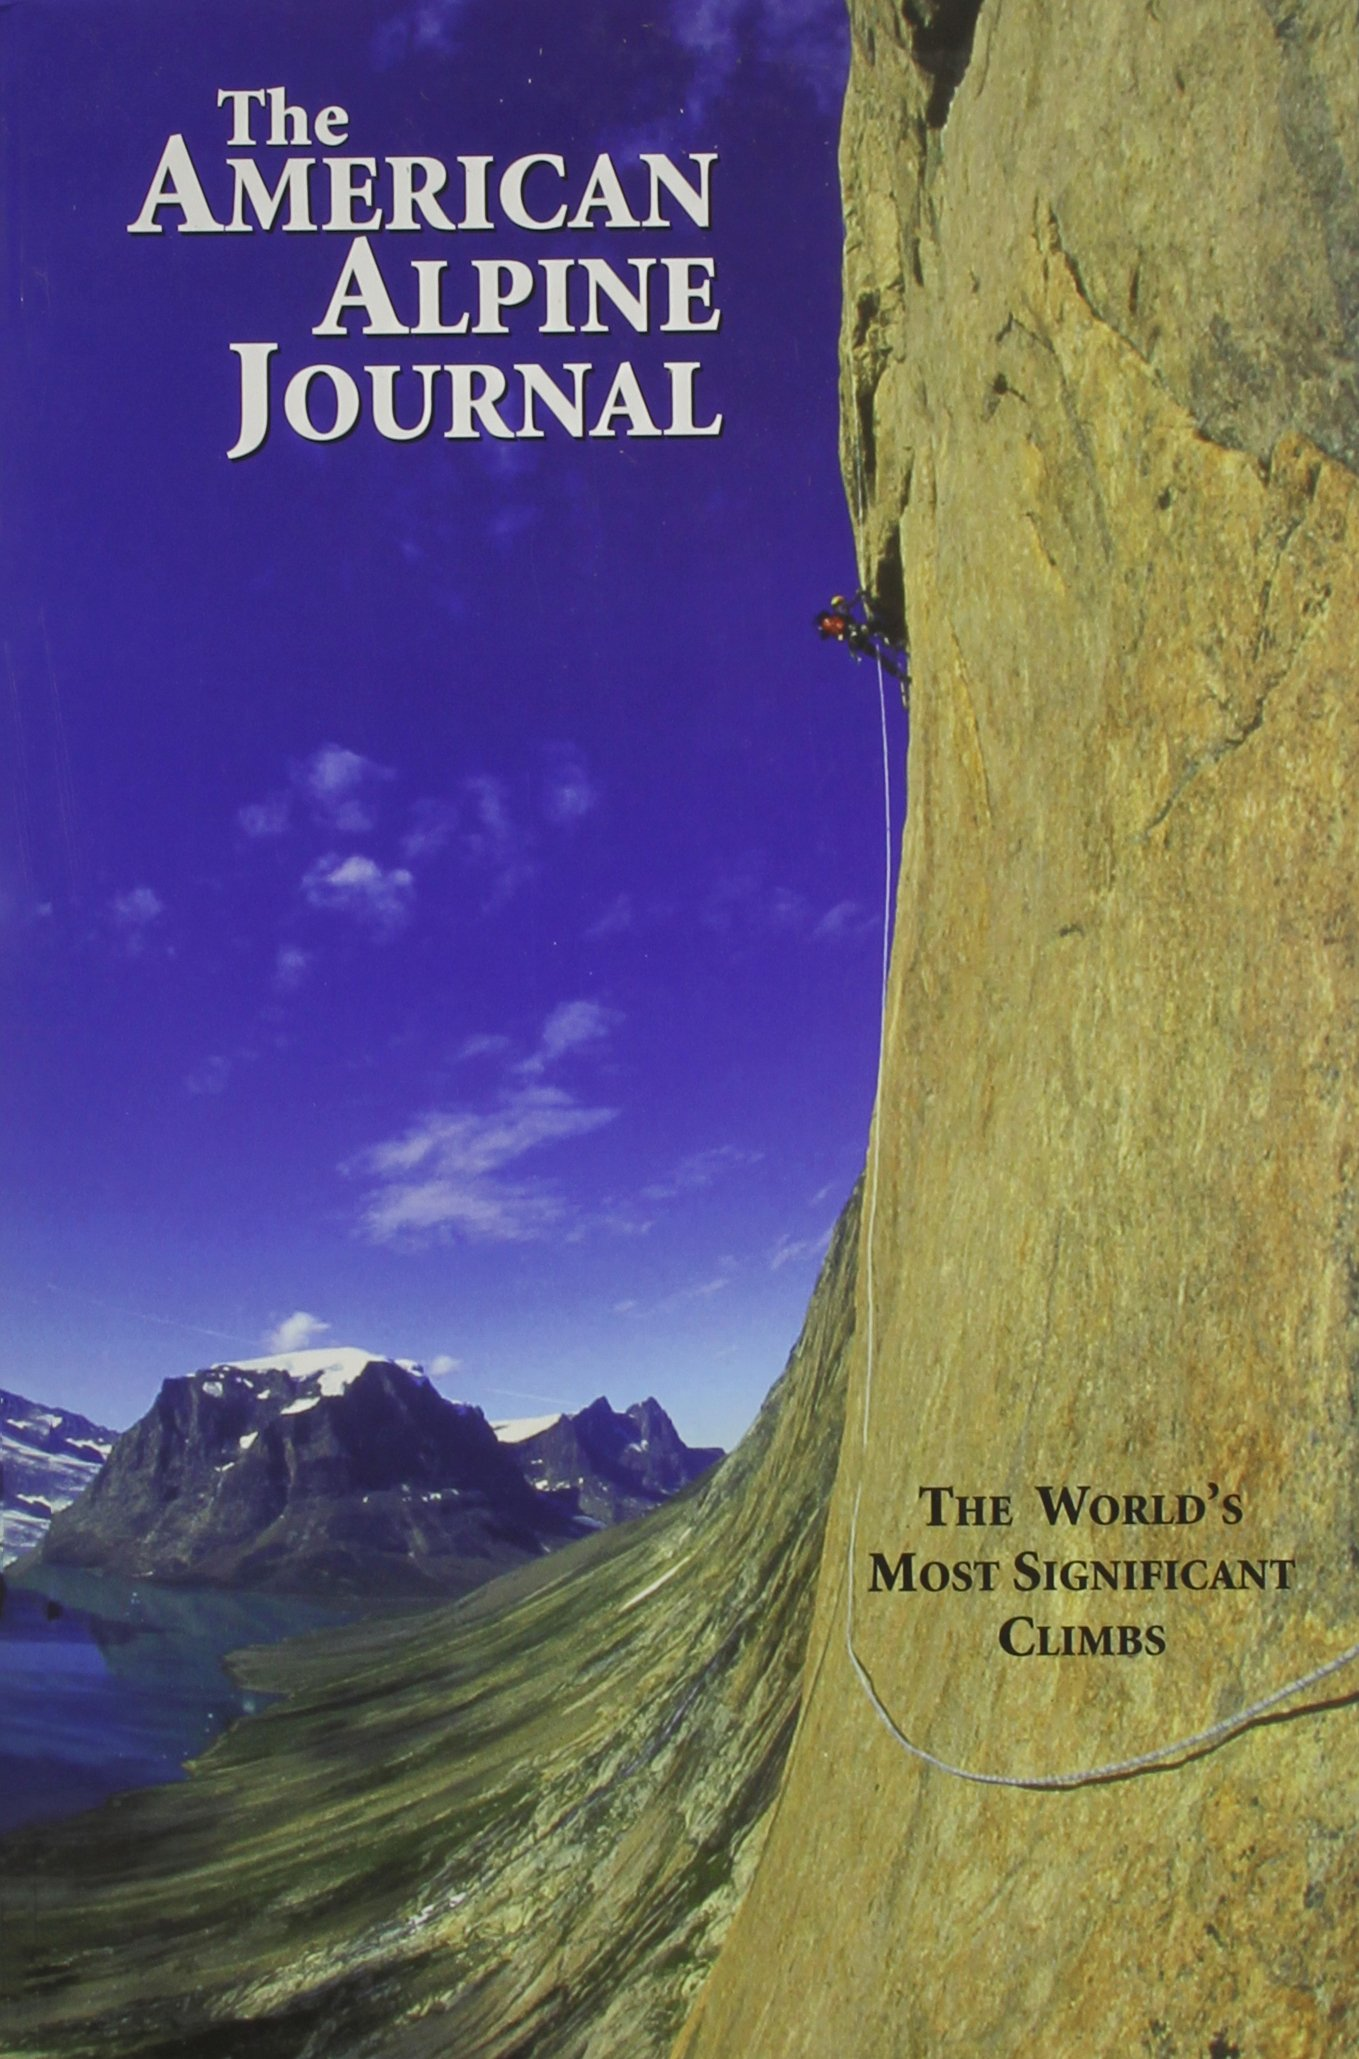 AMER ALPINE JOURNAL VOLUME 51 (American Alpine Journal)